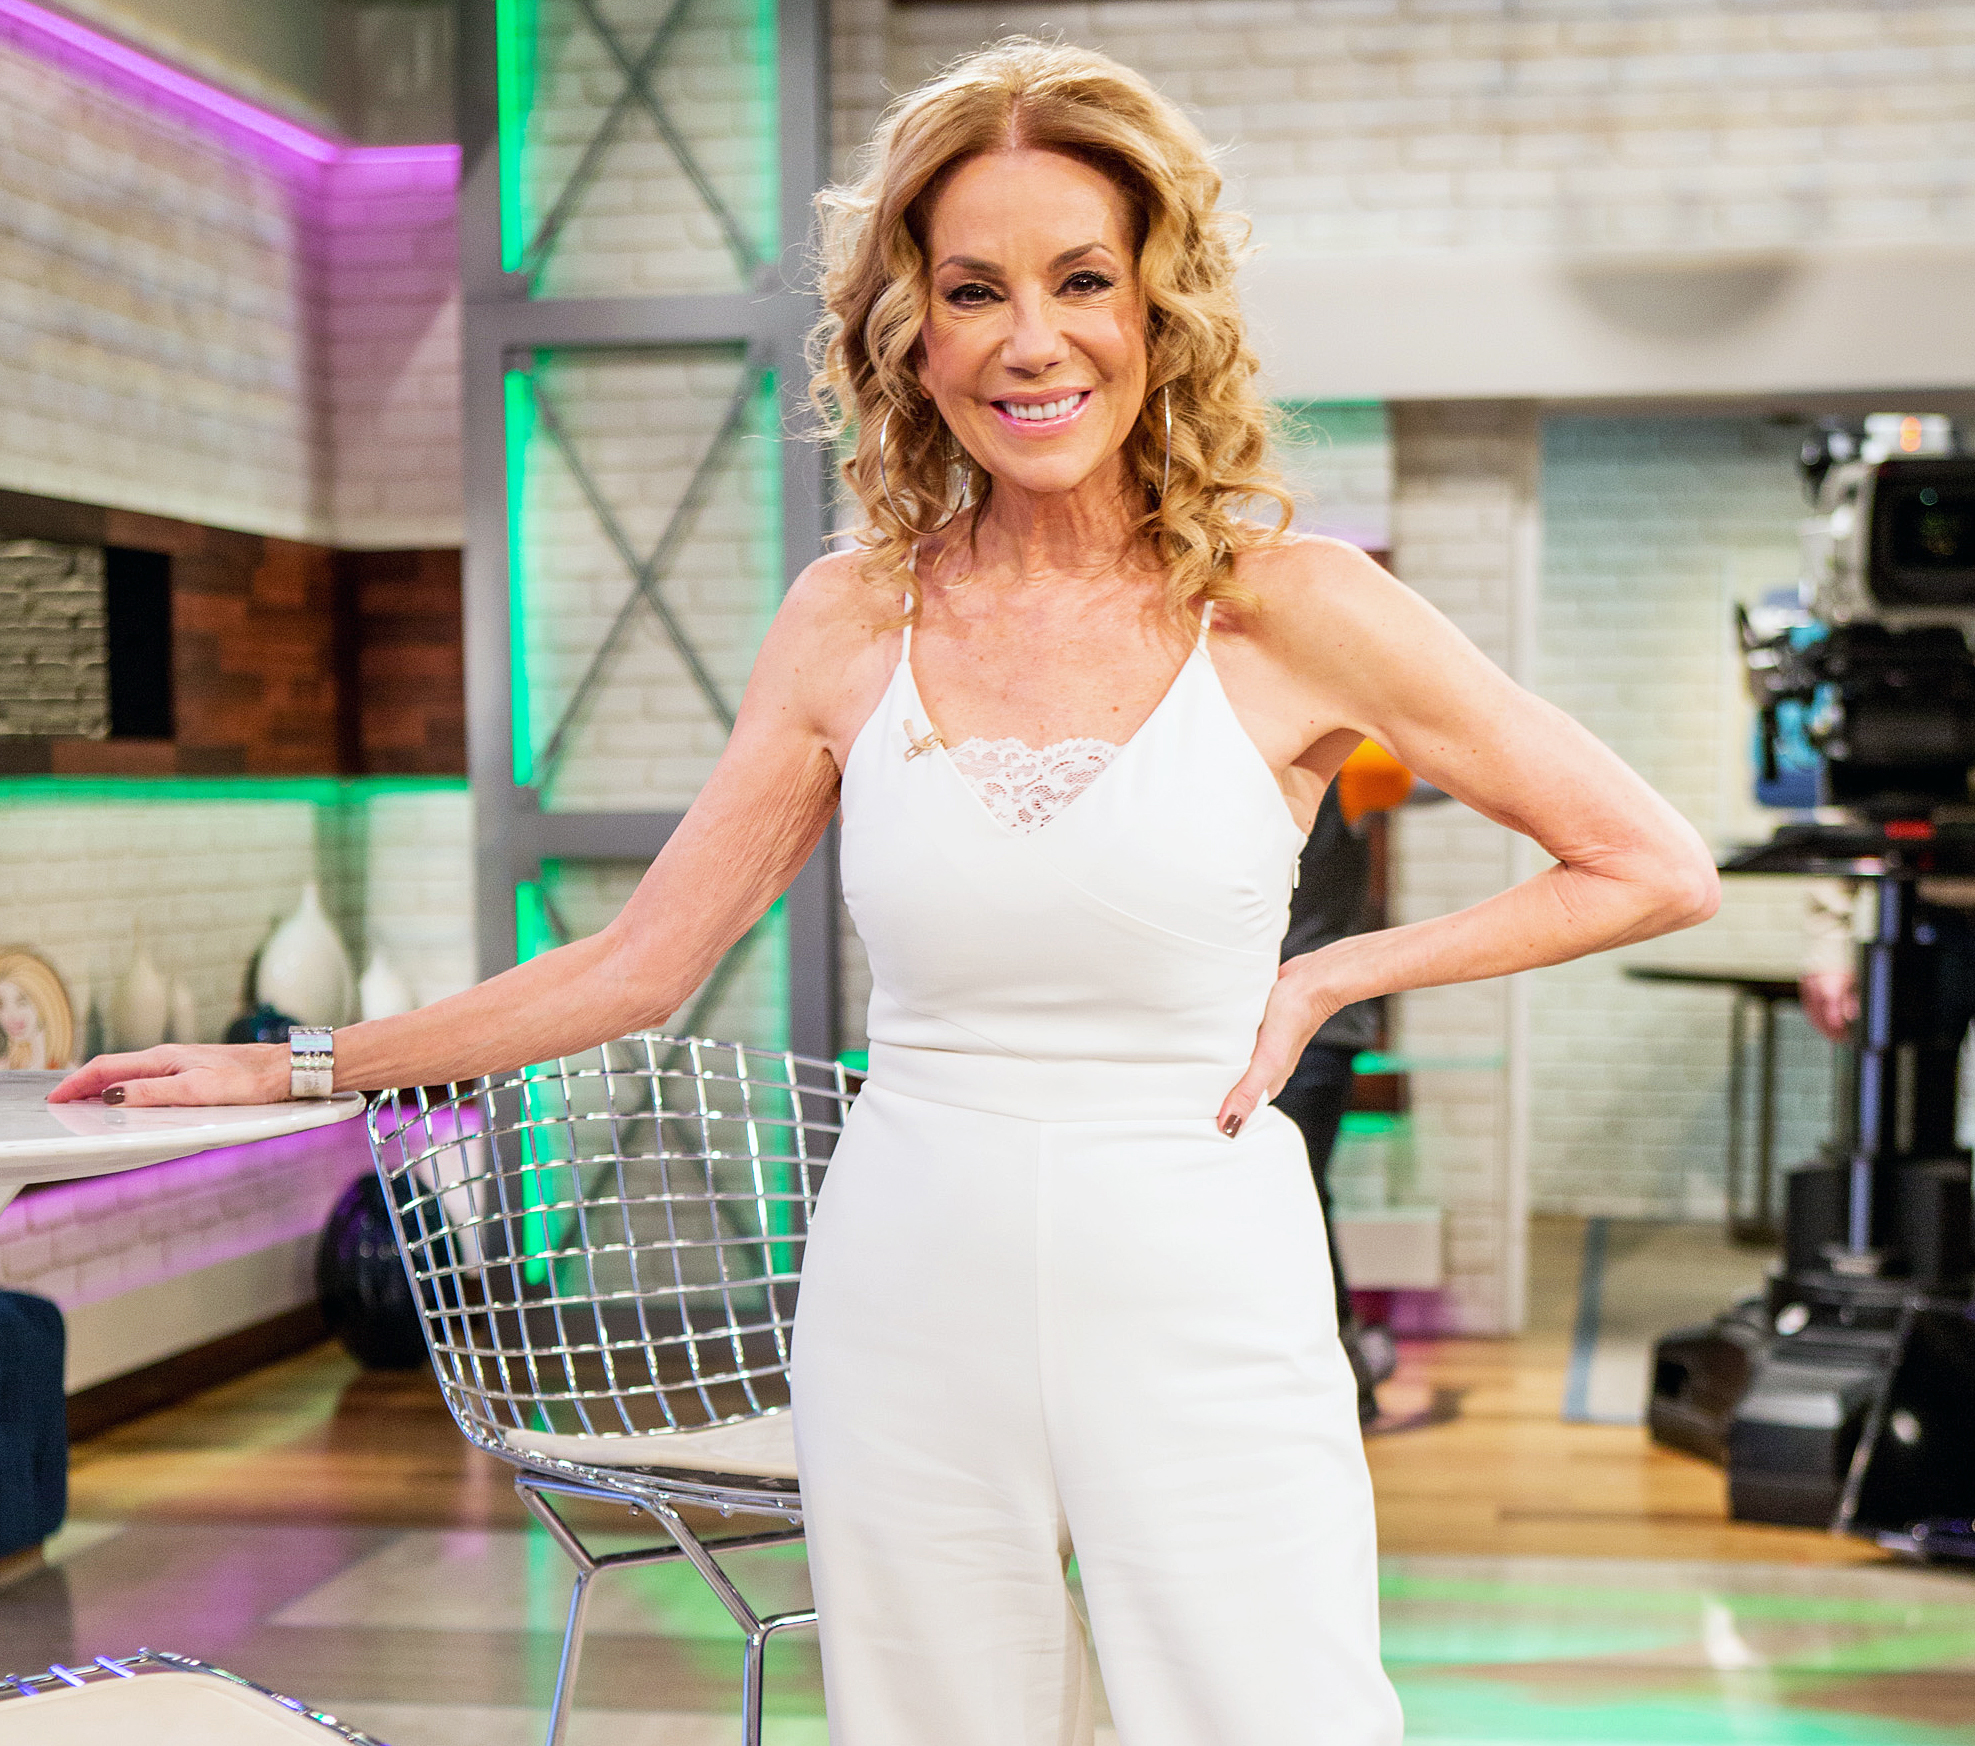 Kathy Lee Gifford clothed unclothed pictures apologise, but